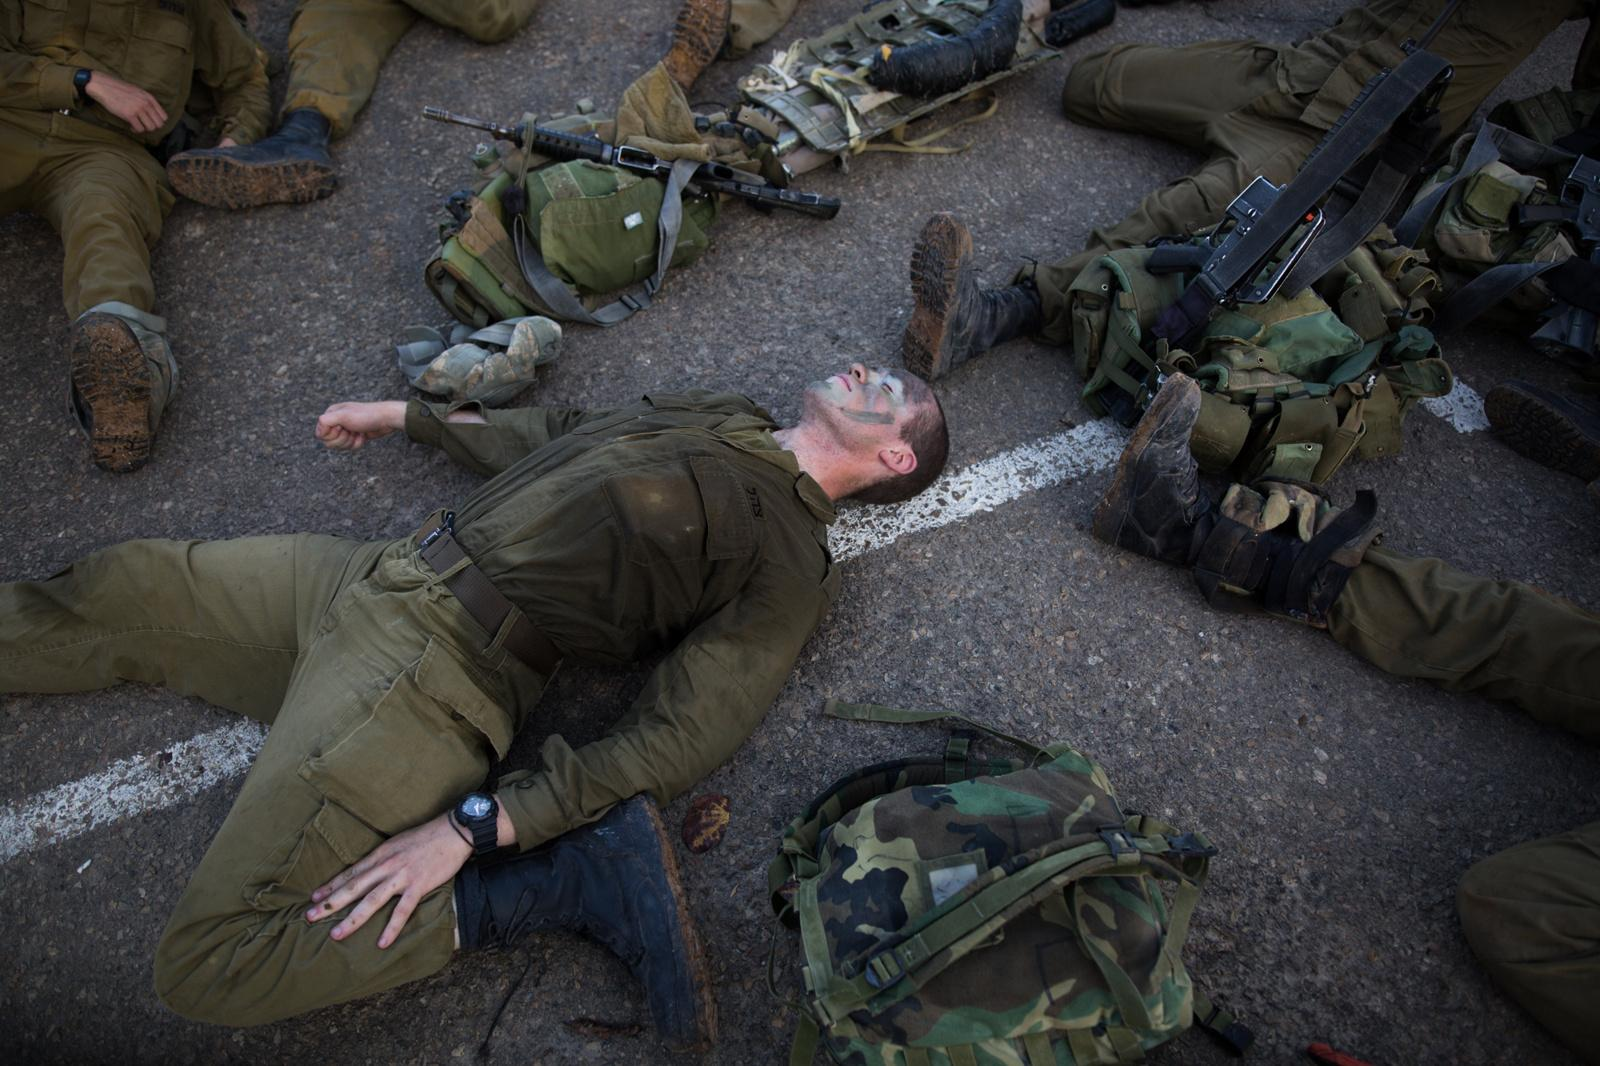 BINYAMINA, ISRAEL - MARCH 08, 2017: Soldiers from the Artillery Corps stretch after taking part in a baret march at the end of their basic army training on March 08, 2017, near the Northern town of Binyamina, Israel. Around 600 soldiers participated in the march of around 25km, that lasted from midnight until the early morning hours.